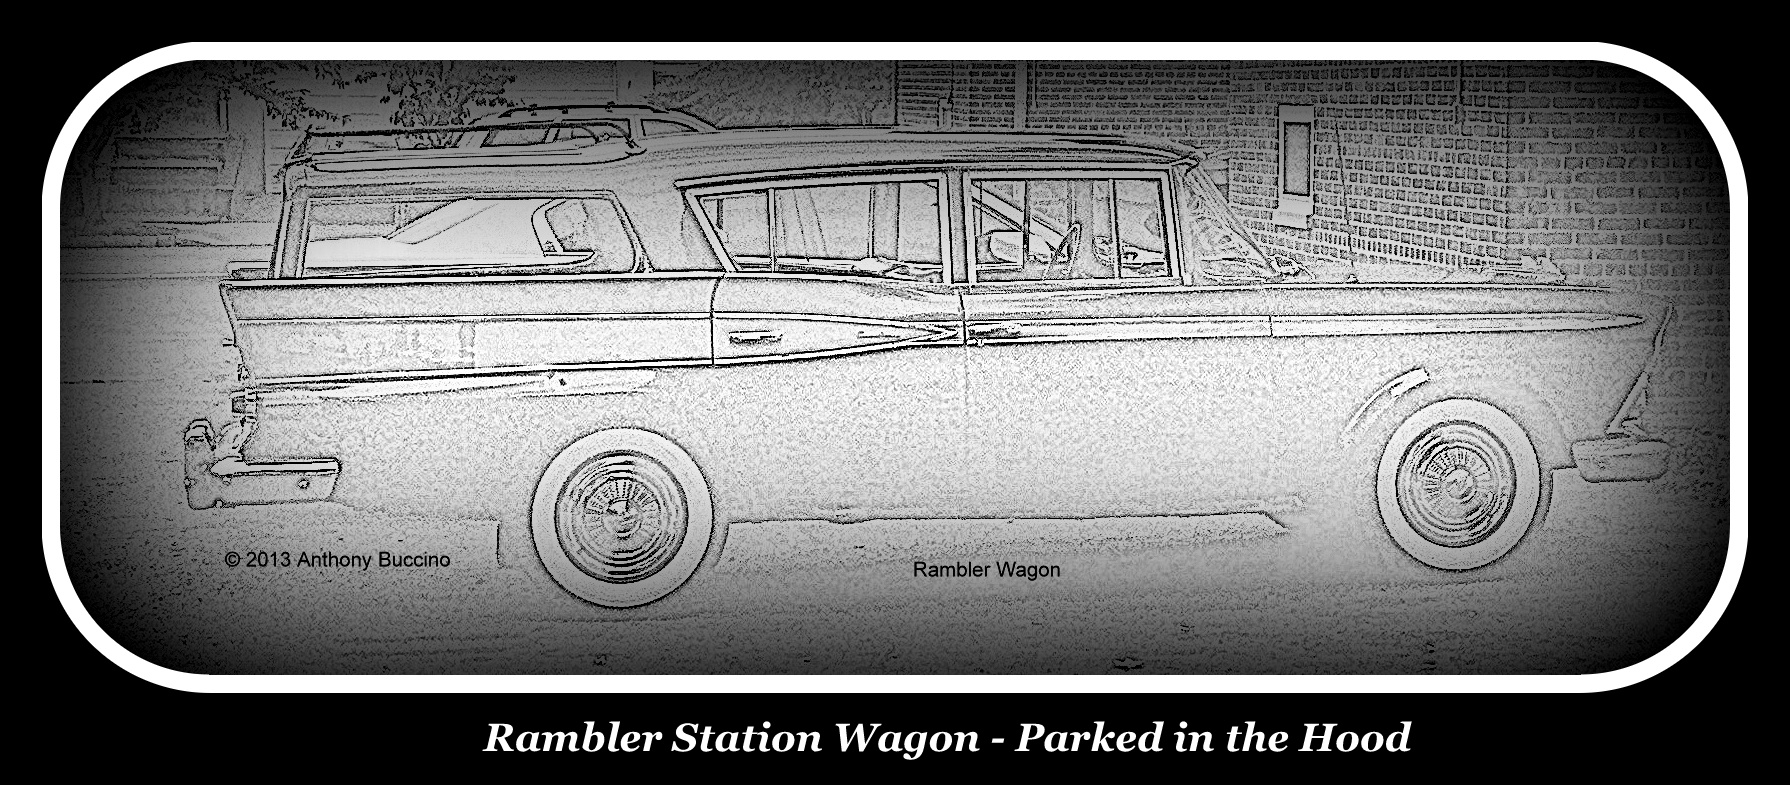 Rambler Station Wagon, pencil-ized, by Anthony Buccino